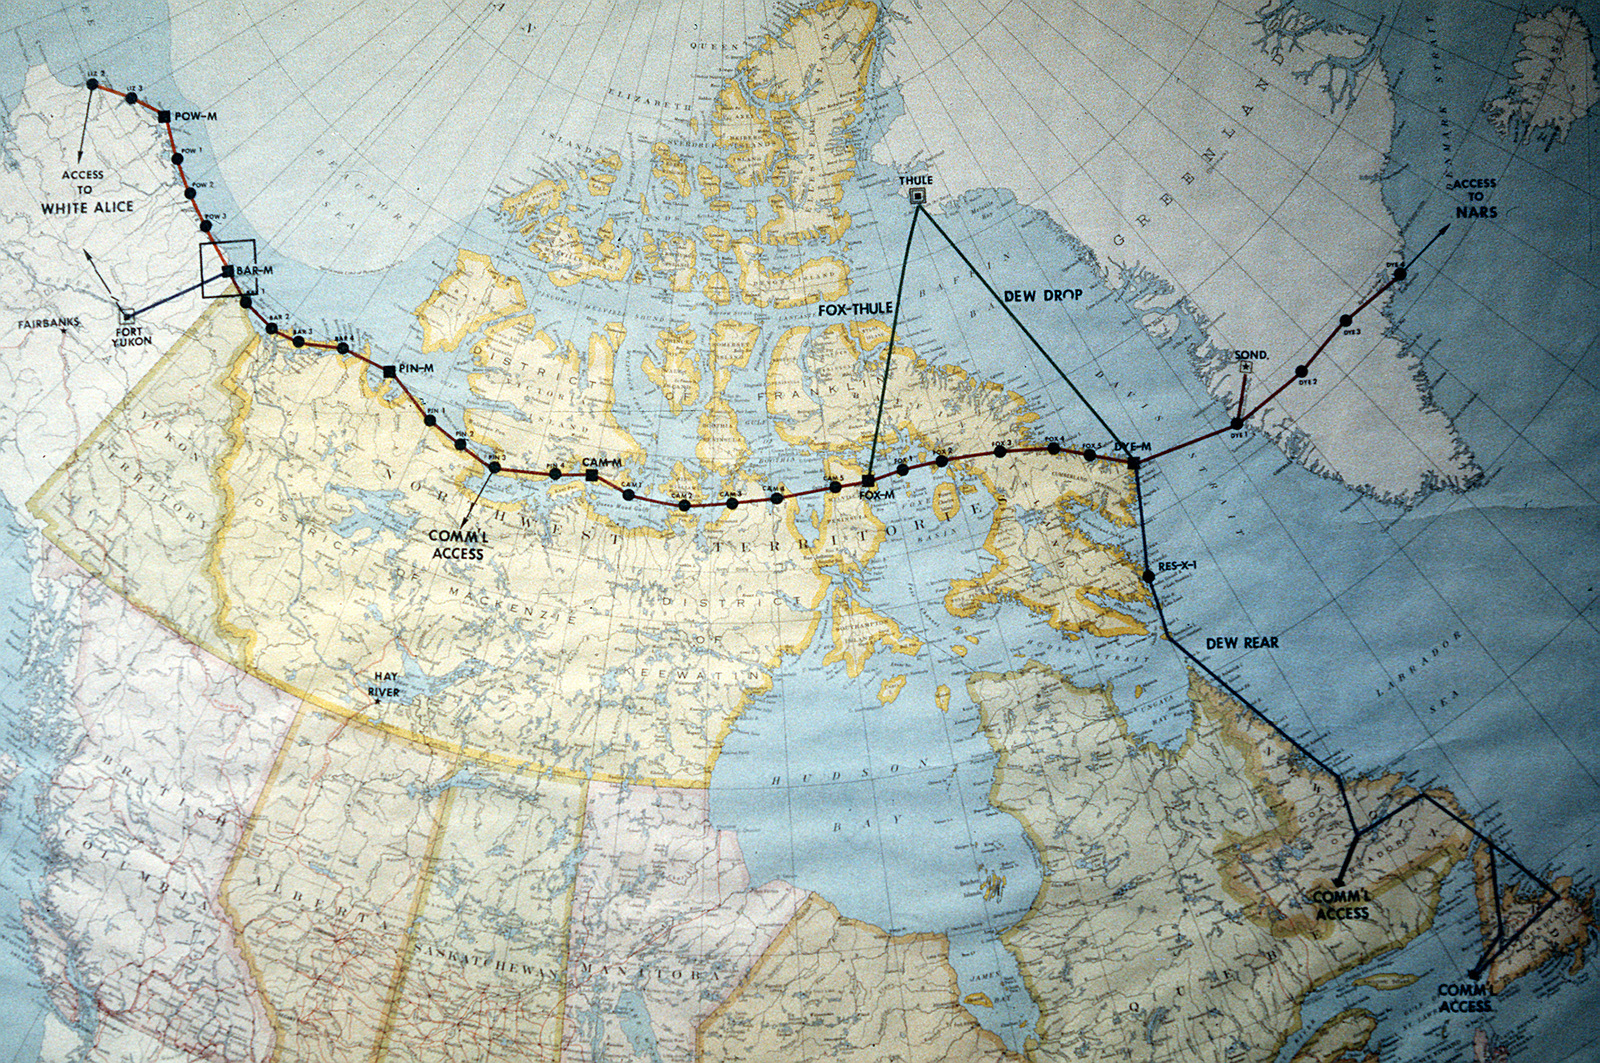 A Map Of North America Near The Arctic Circle Showing 30 Radar Sites